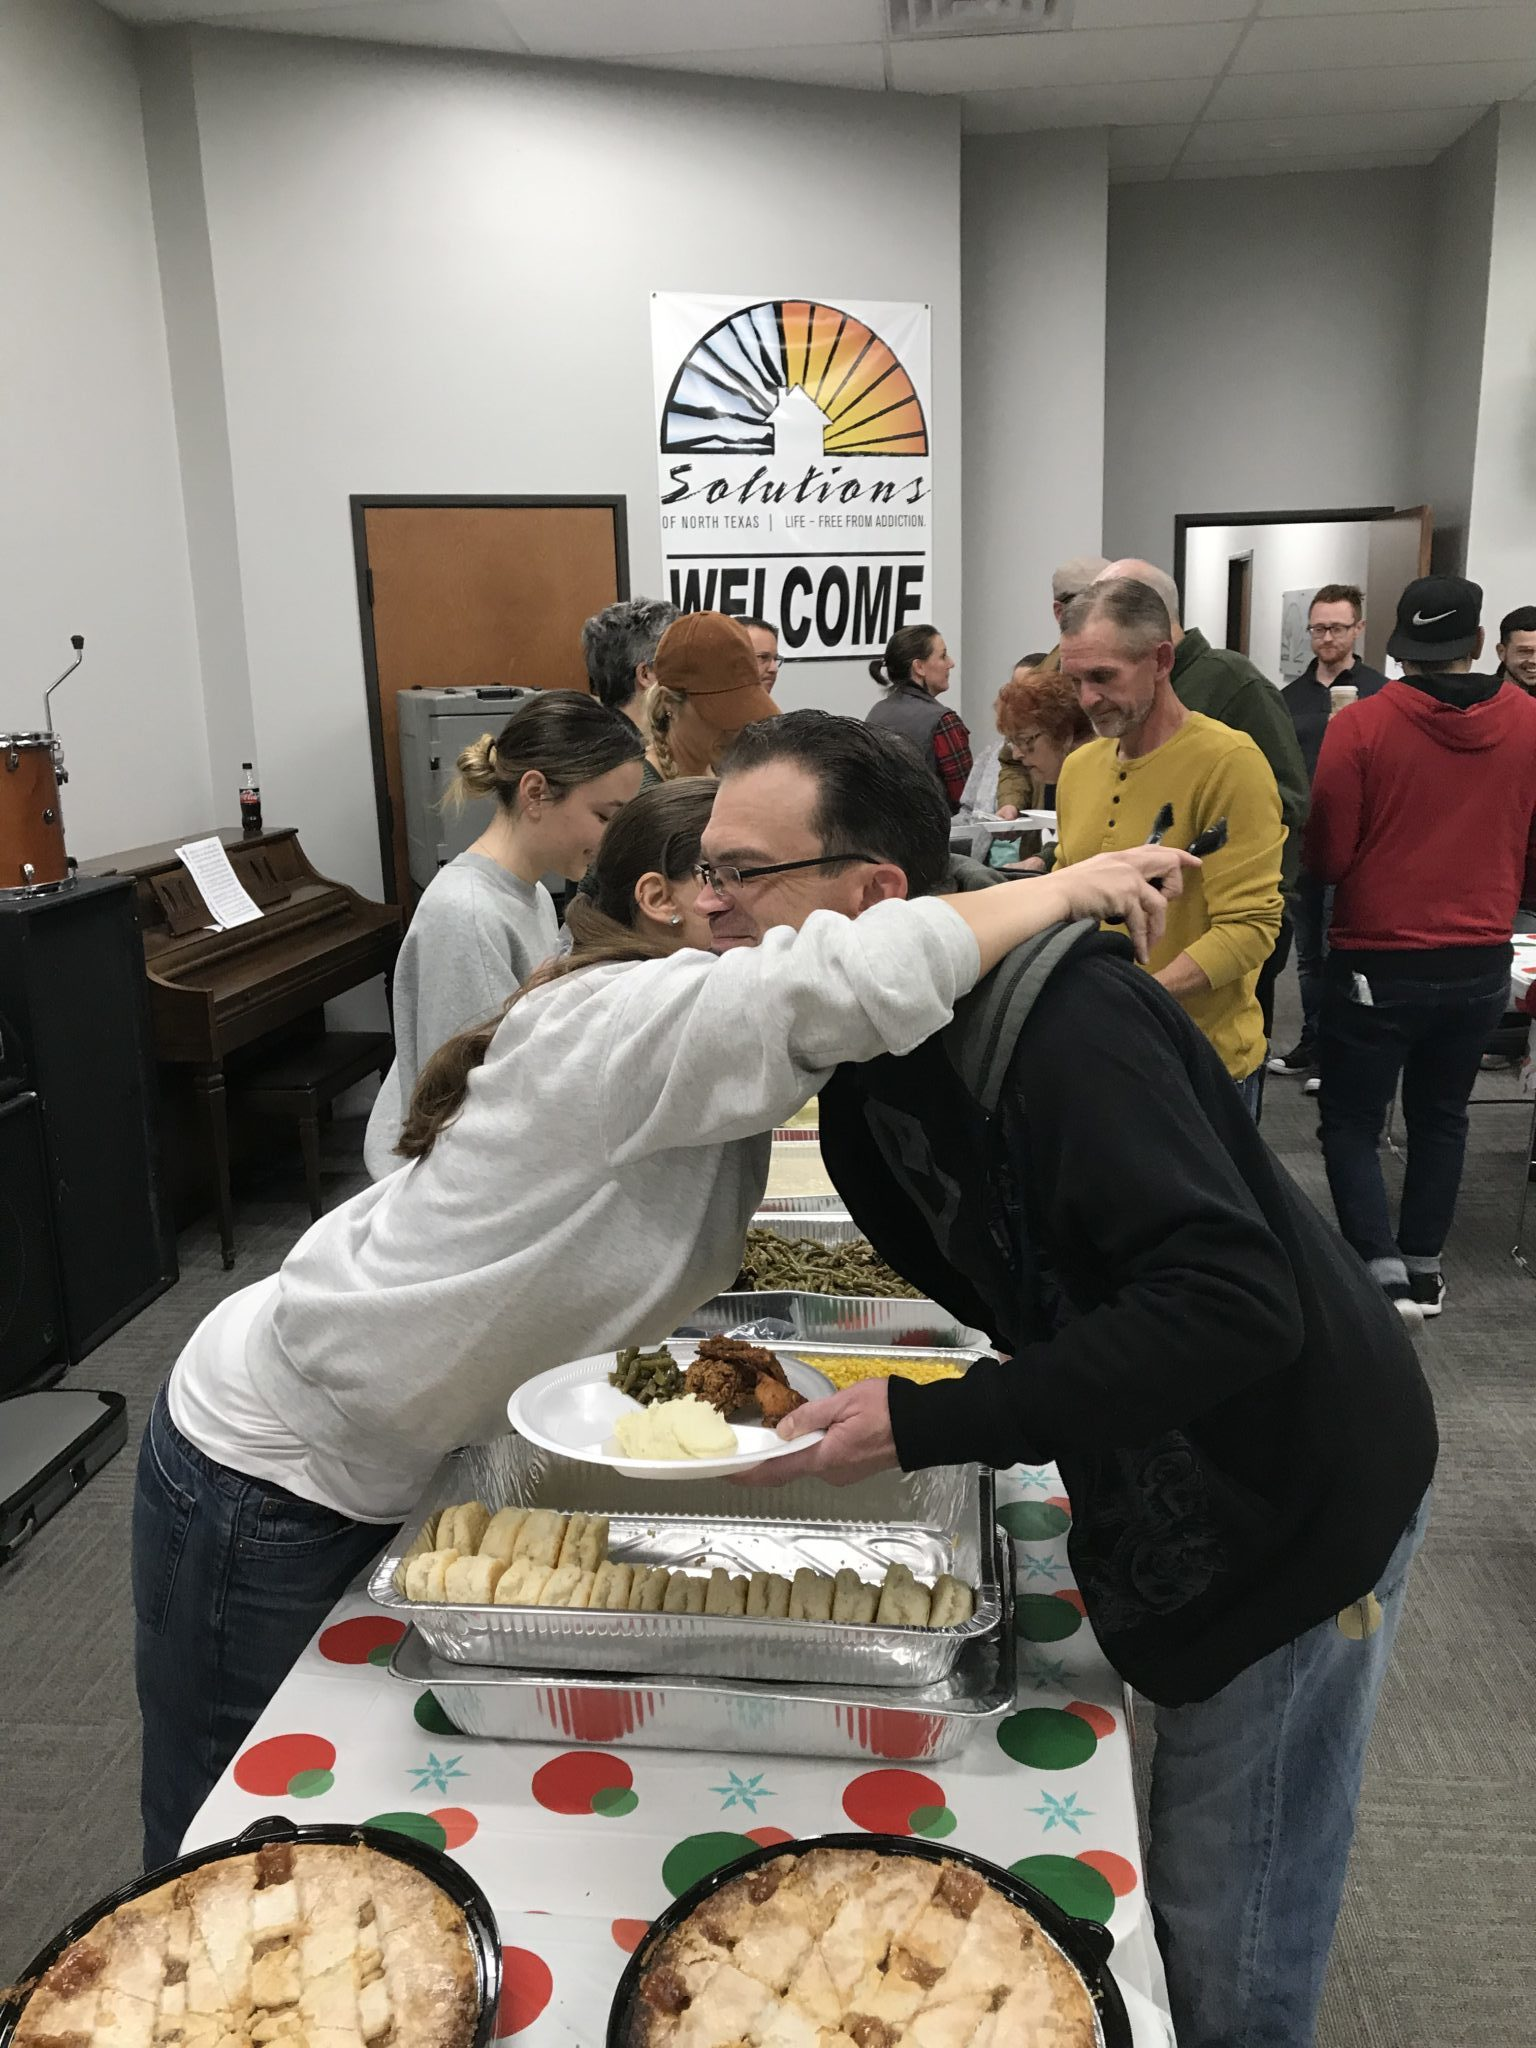 serving food at SONTX 2019 Christmas Party - Solutions of North Texas - Tarrant County Sober Living